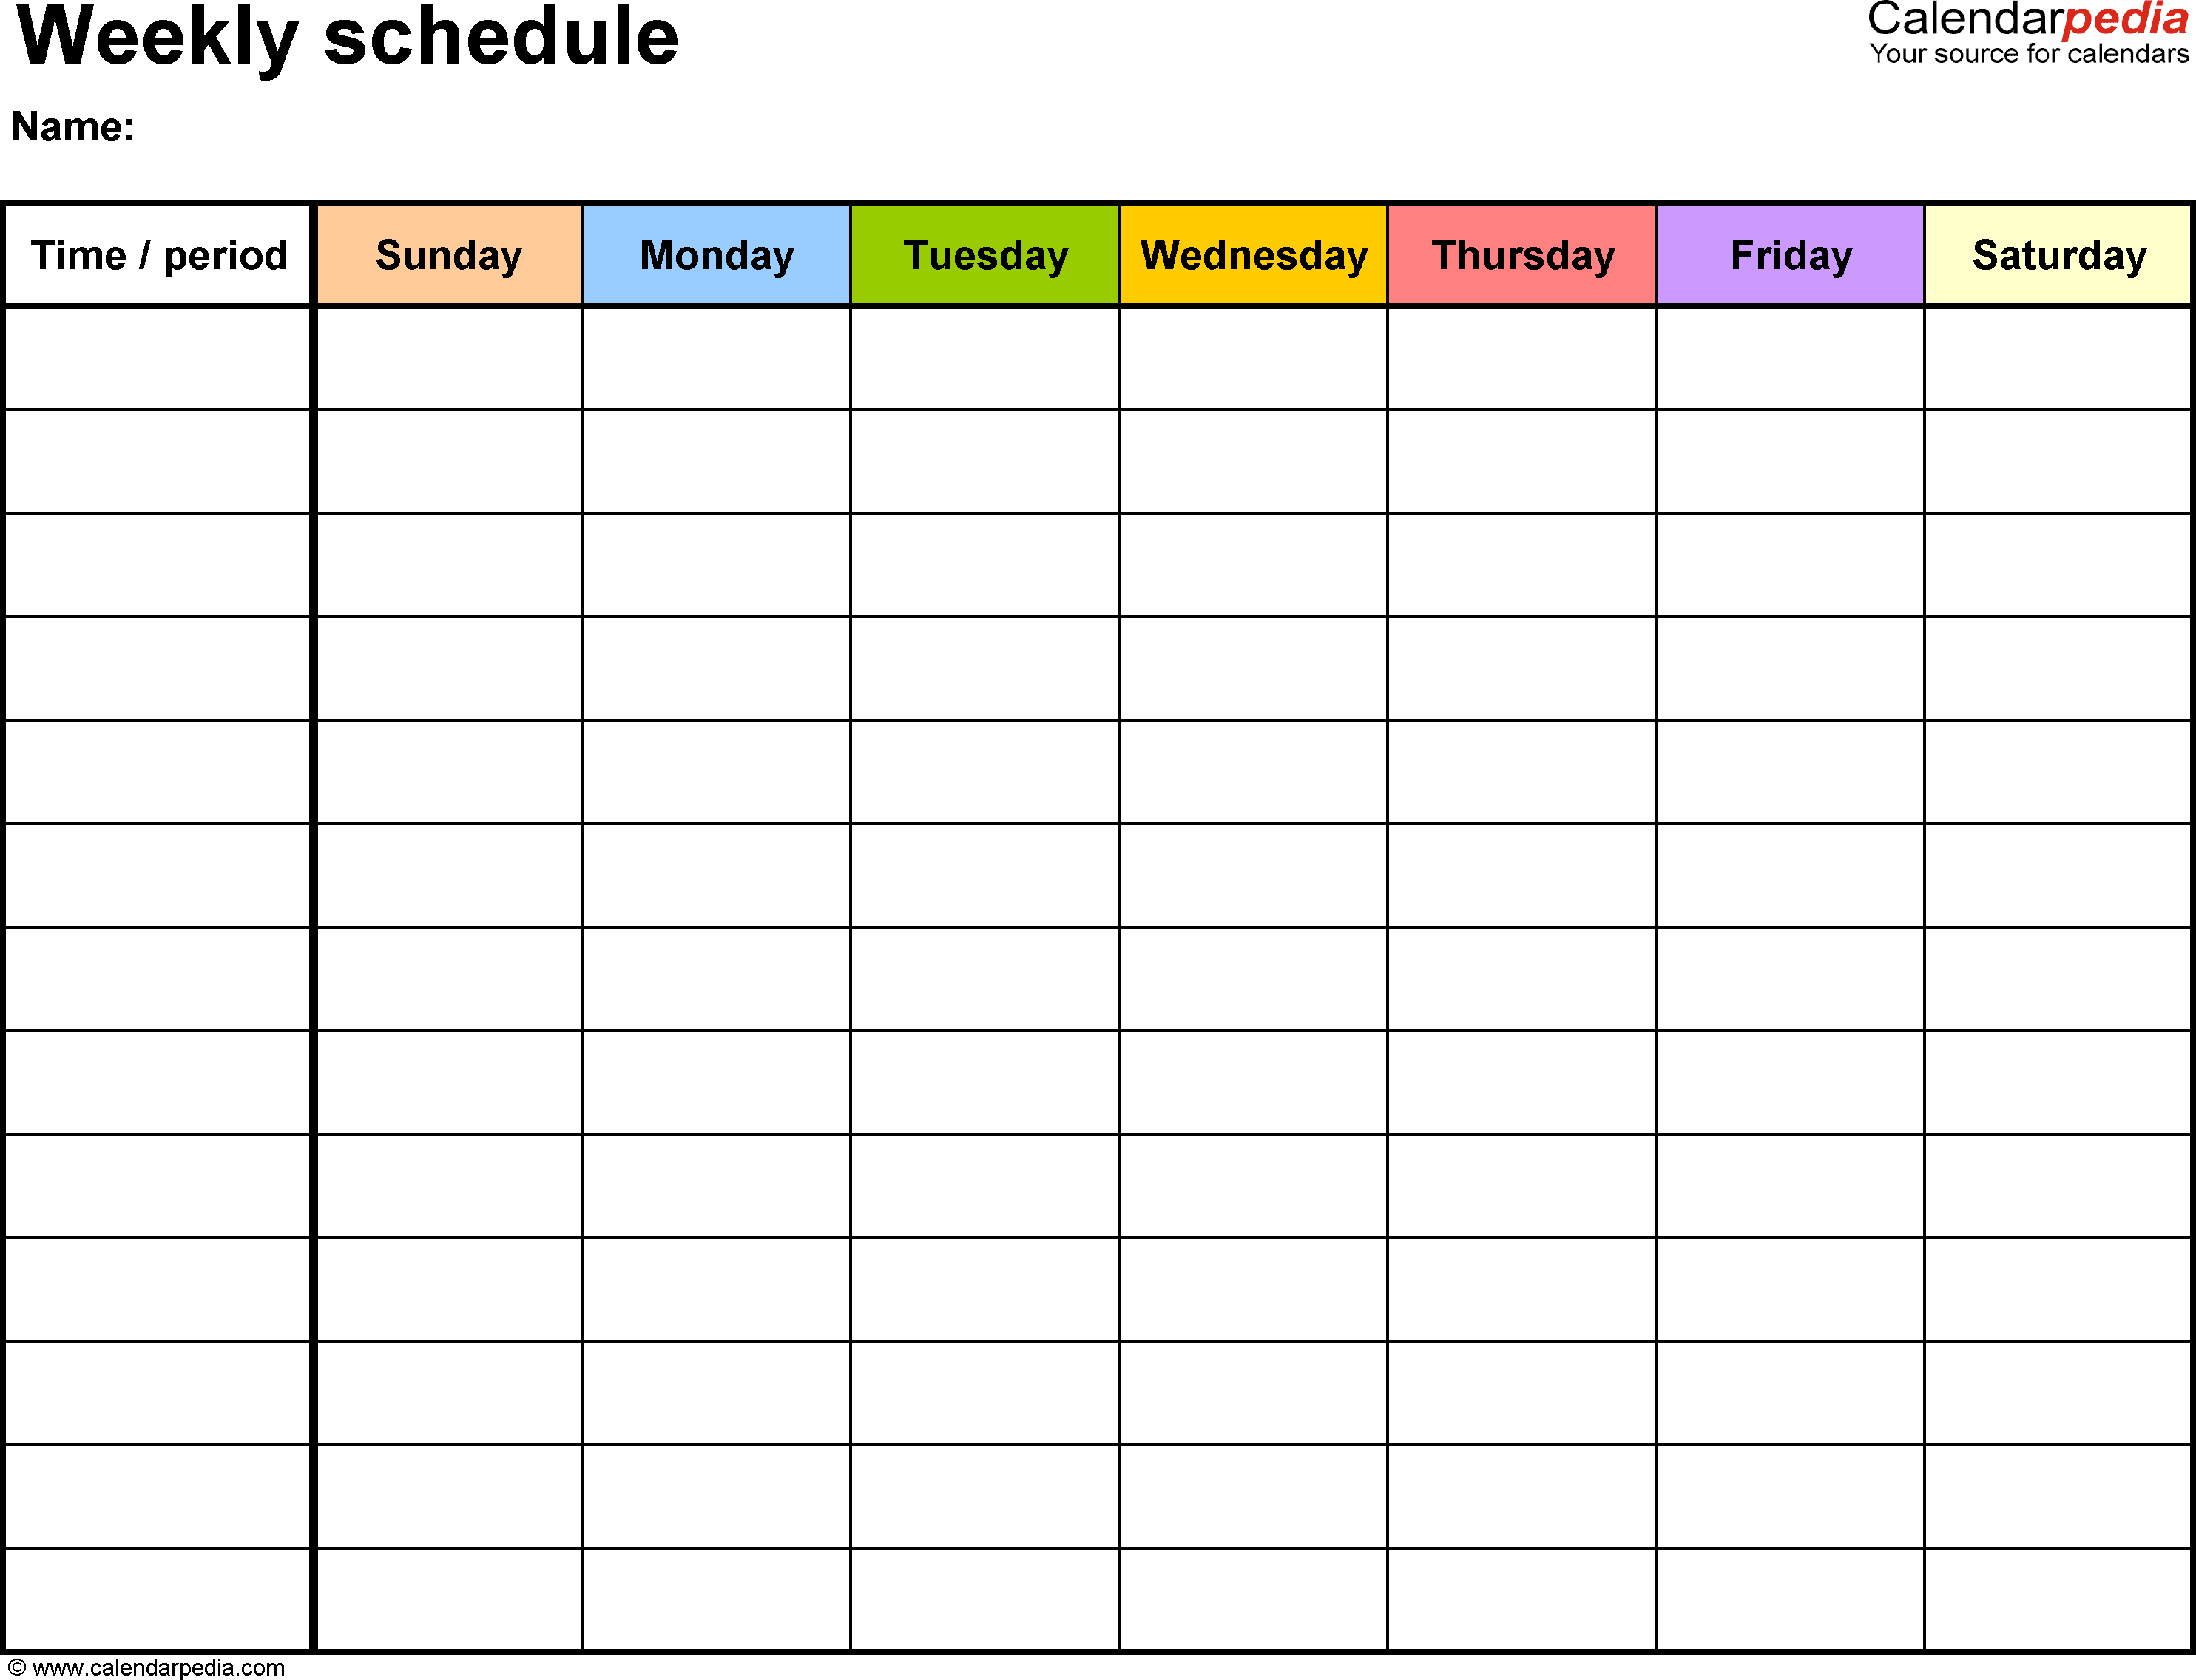 Free Weekly Schedule Templates For Excel - 18 Templates intended for 6 Weeks Holiday Timeline Template